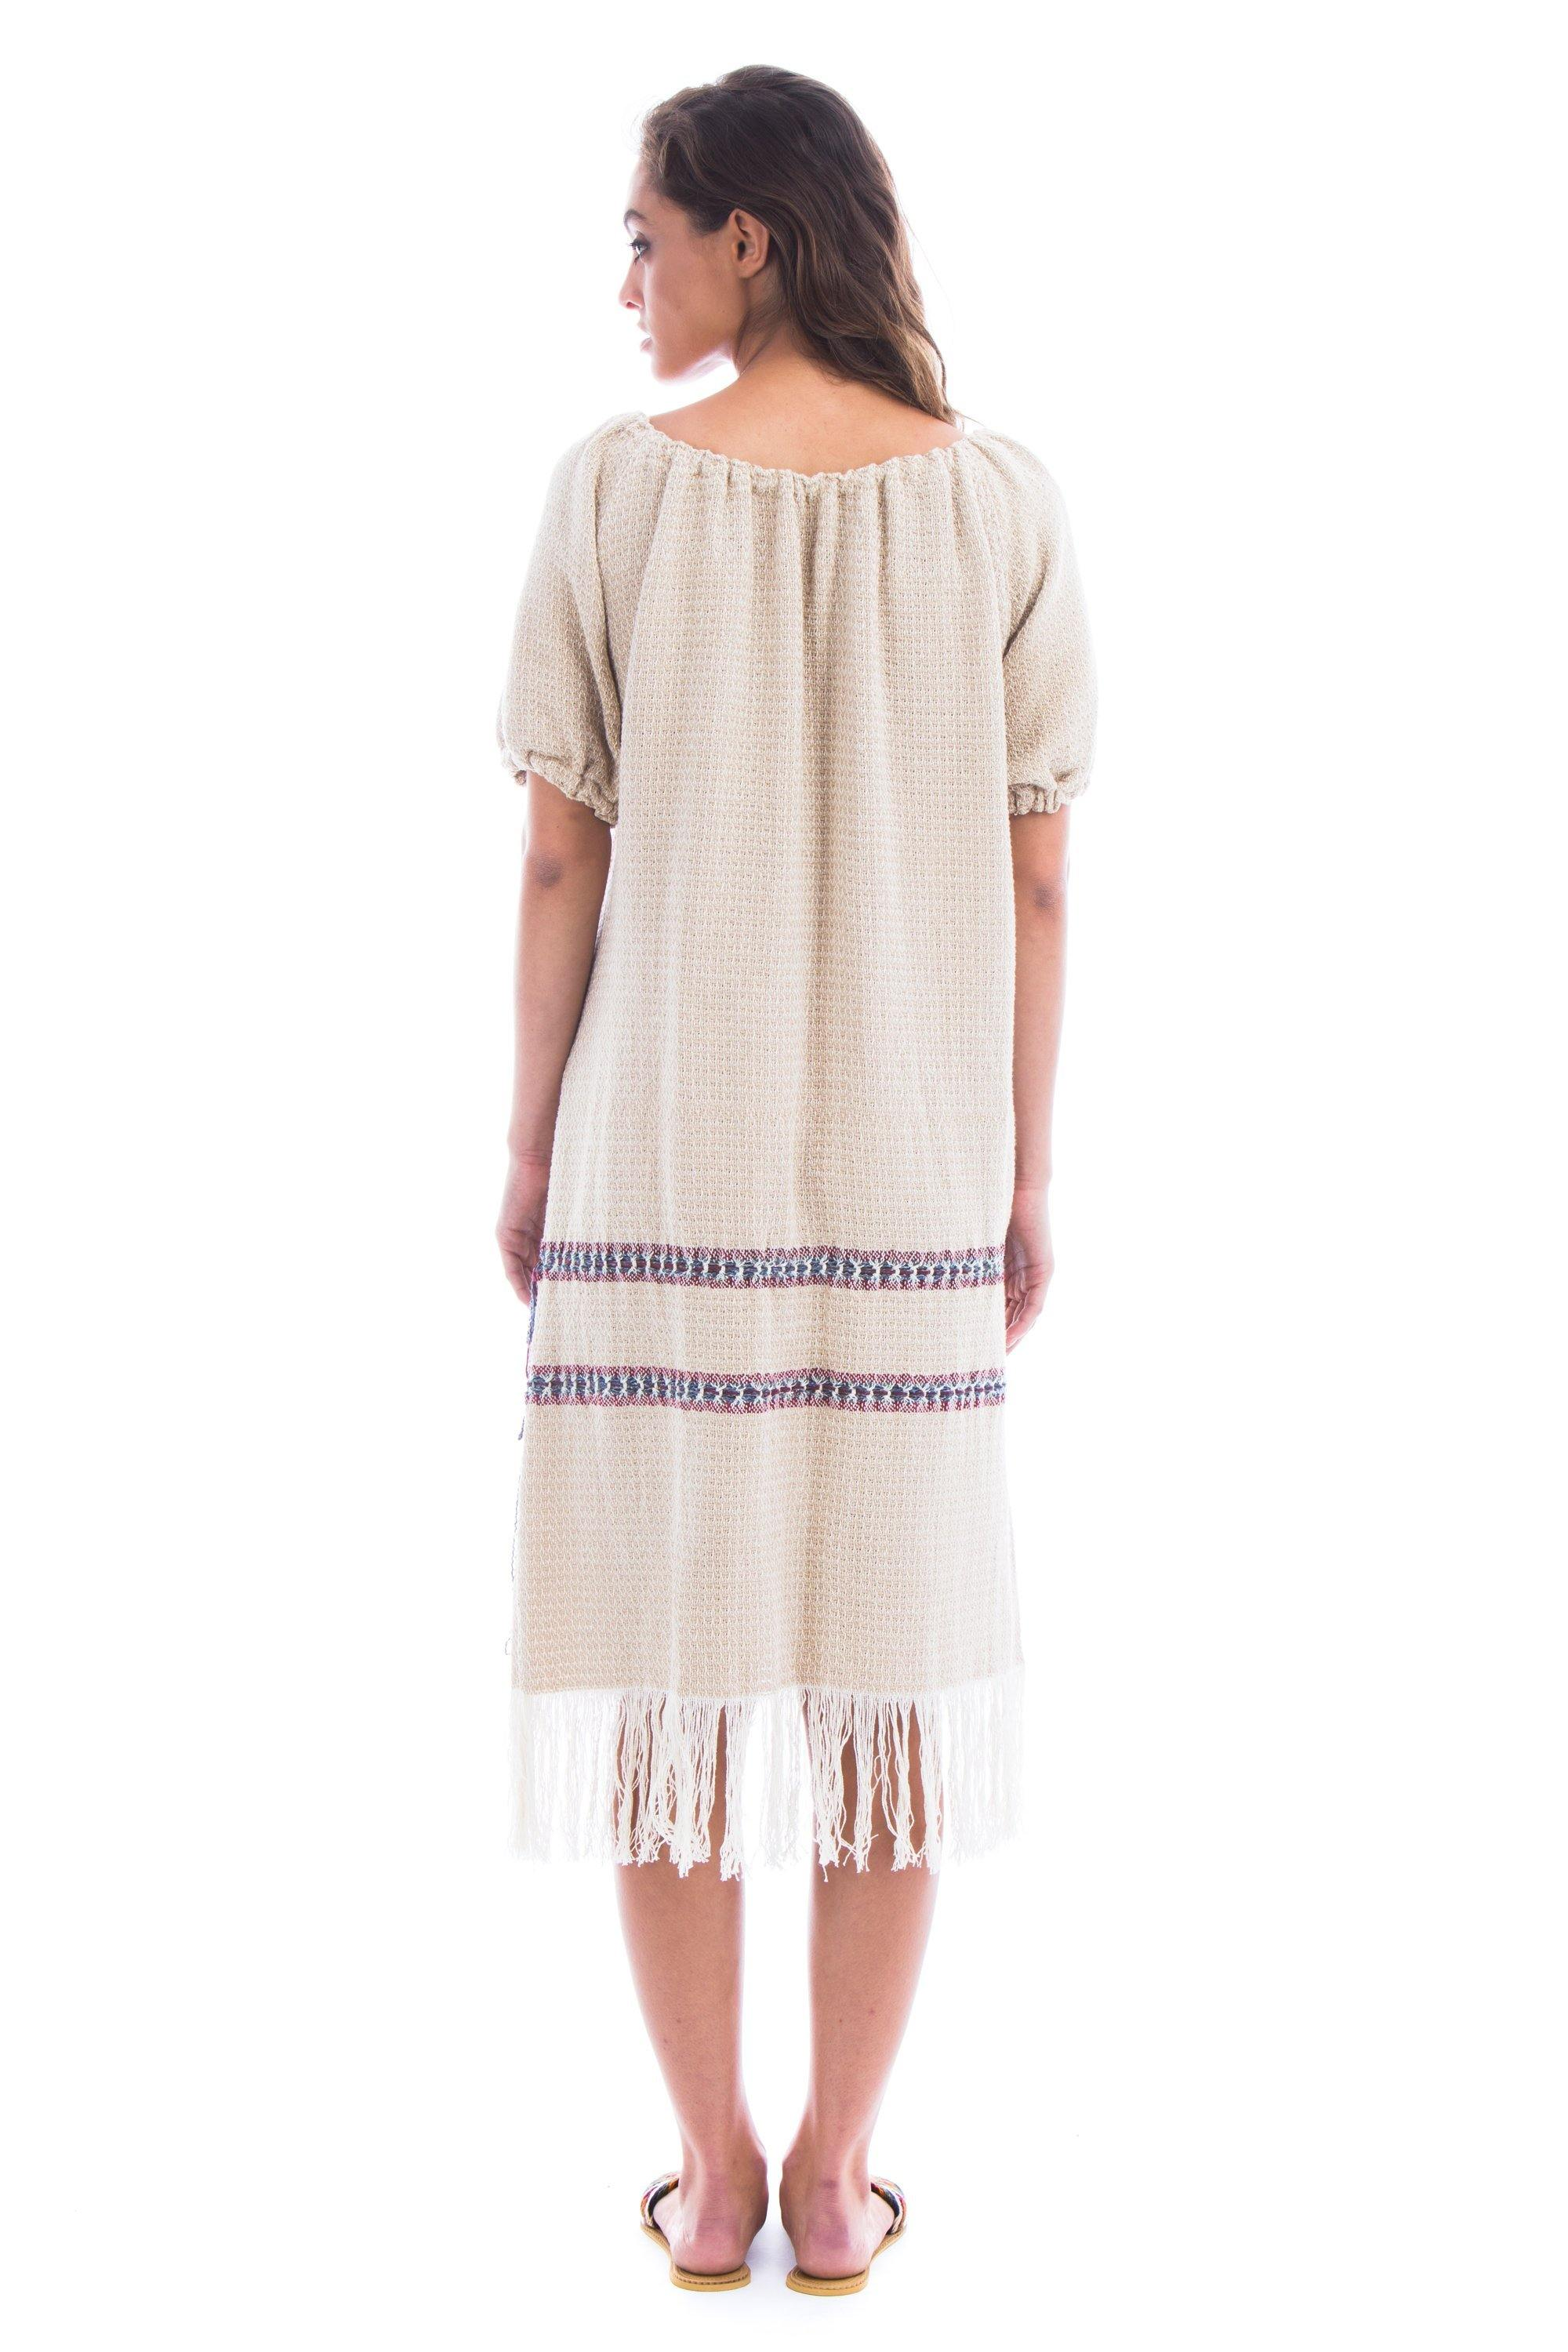 natural-rough-dress-beige-weaving-cotton-handcrafted-arisanal